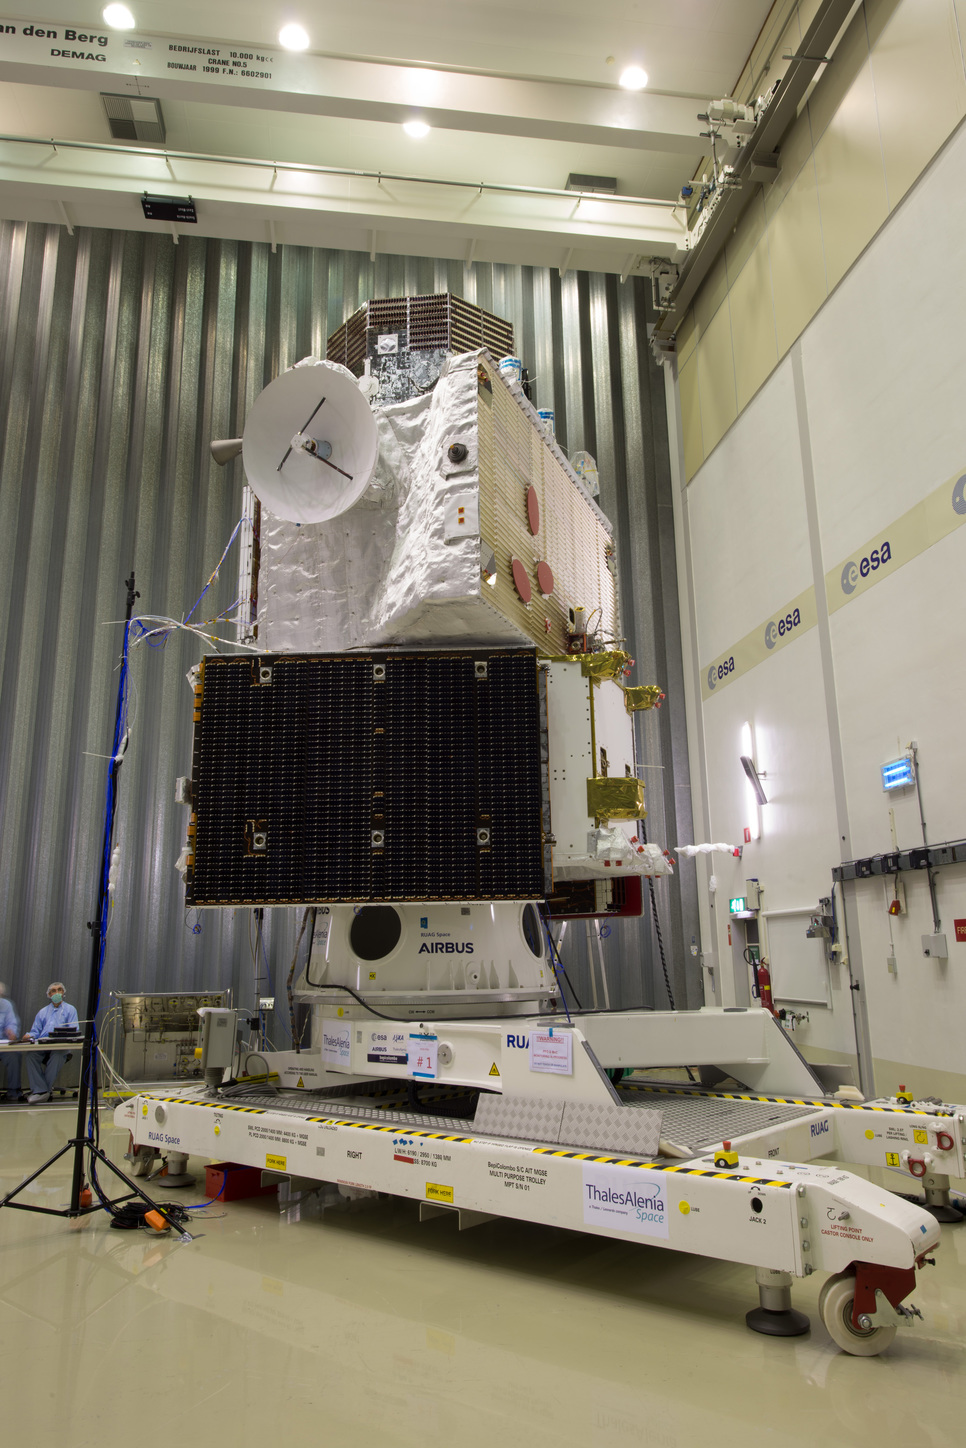 BepiColombo at ESA's test centre, before a sun shield was placed around the unit at the top. - Image Credit: ESA–Philippe Sebirot,  CC BY-SA